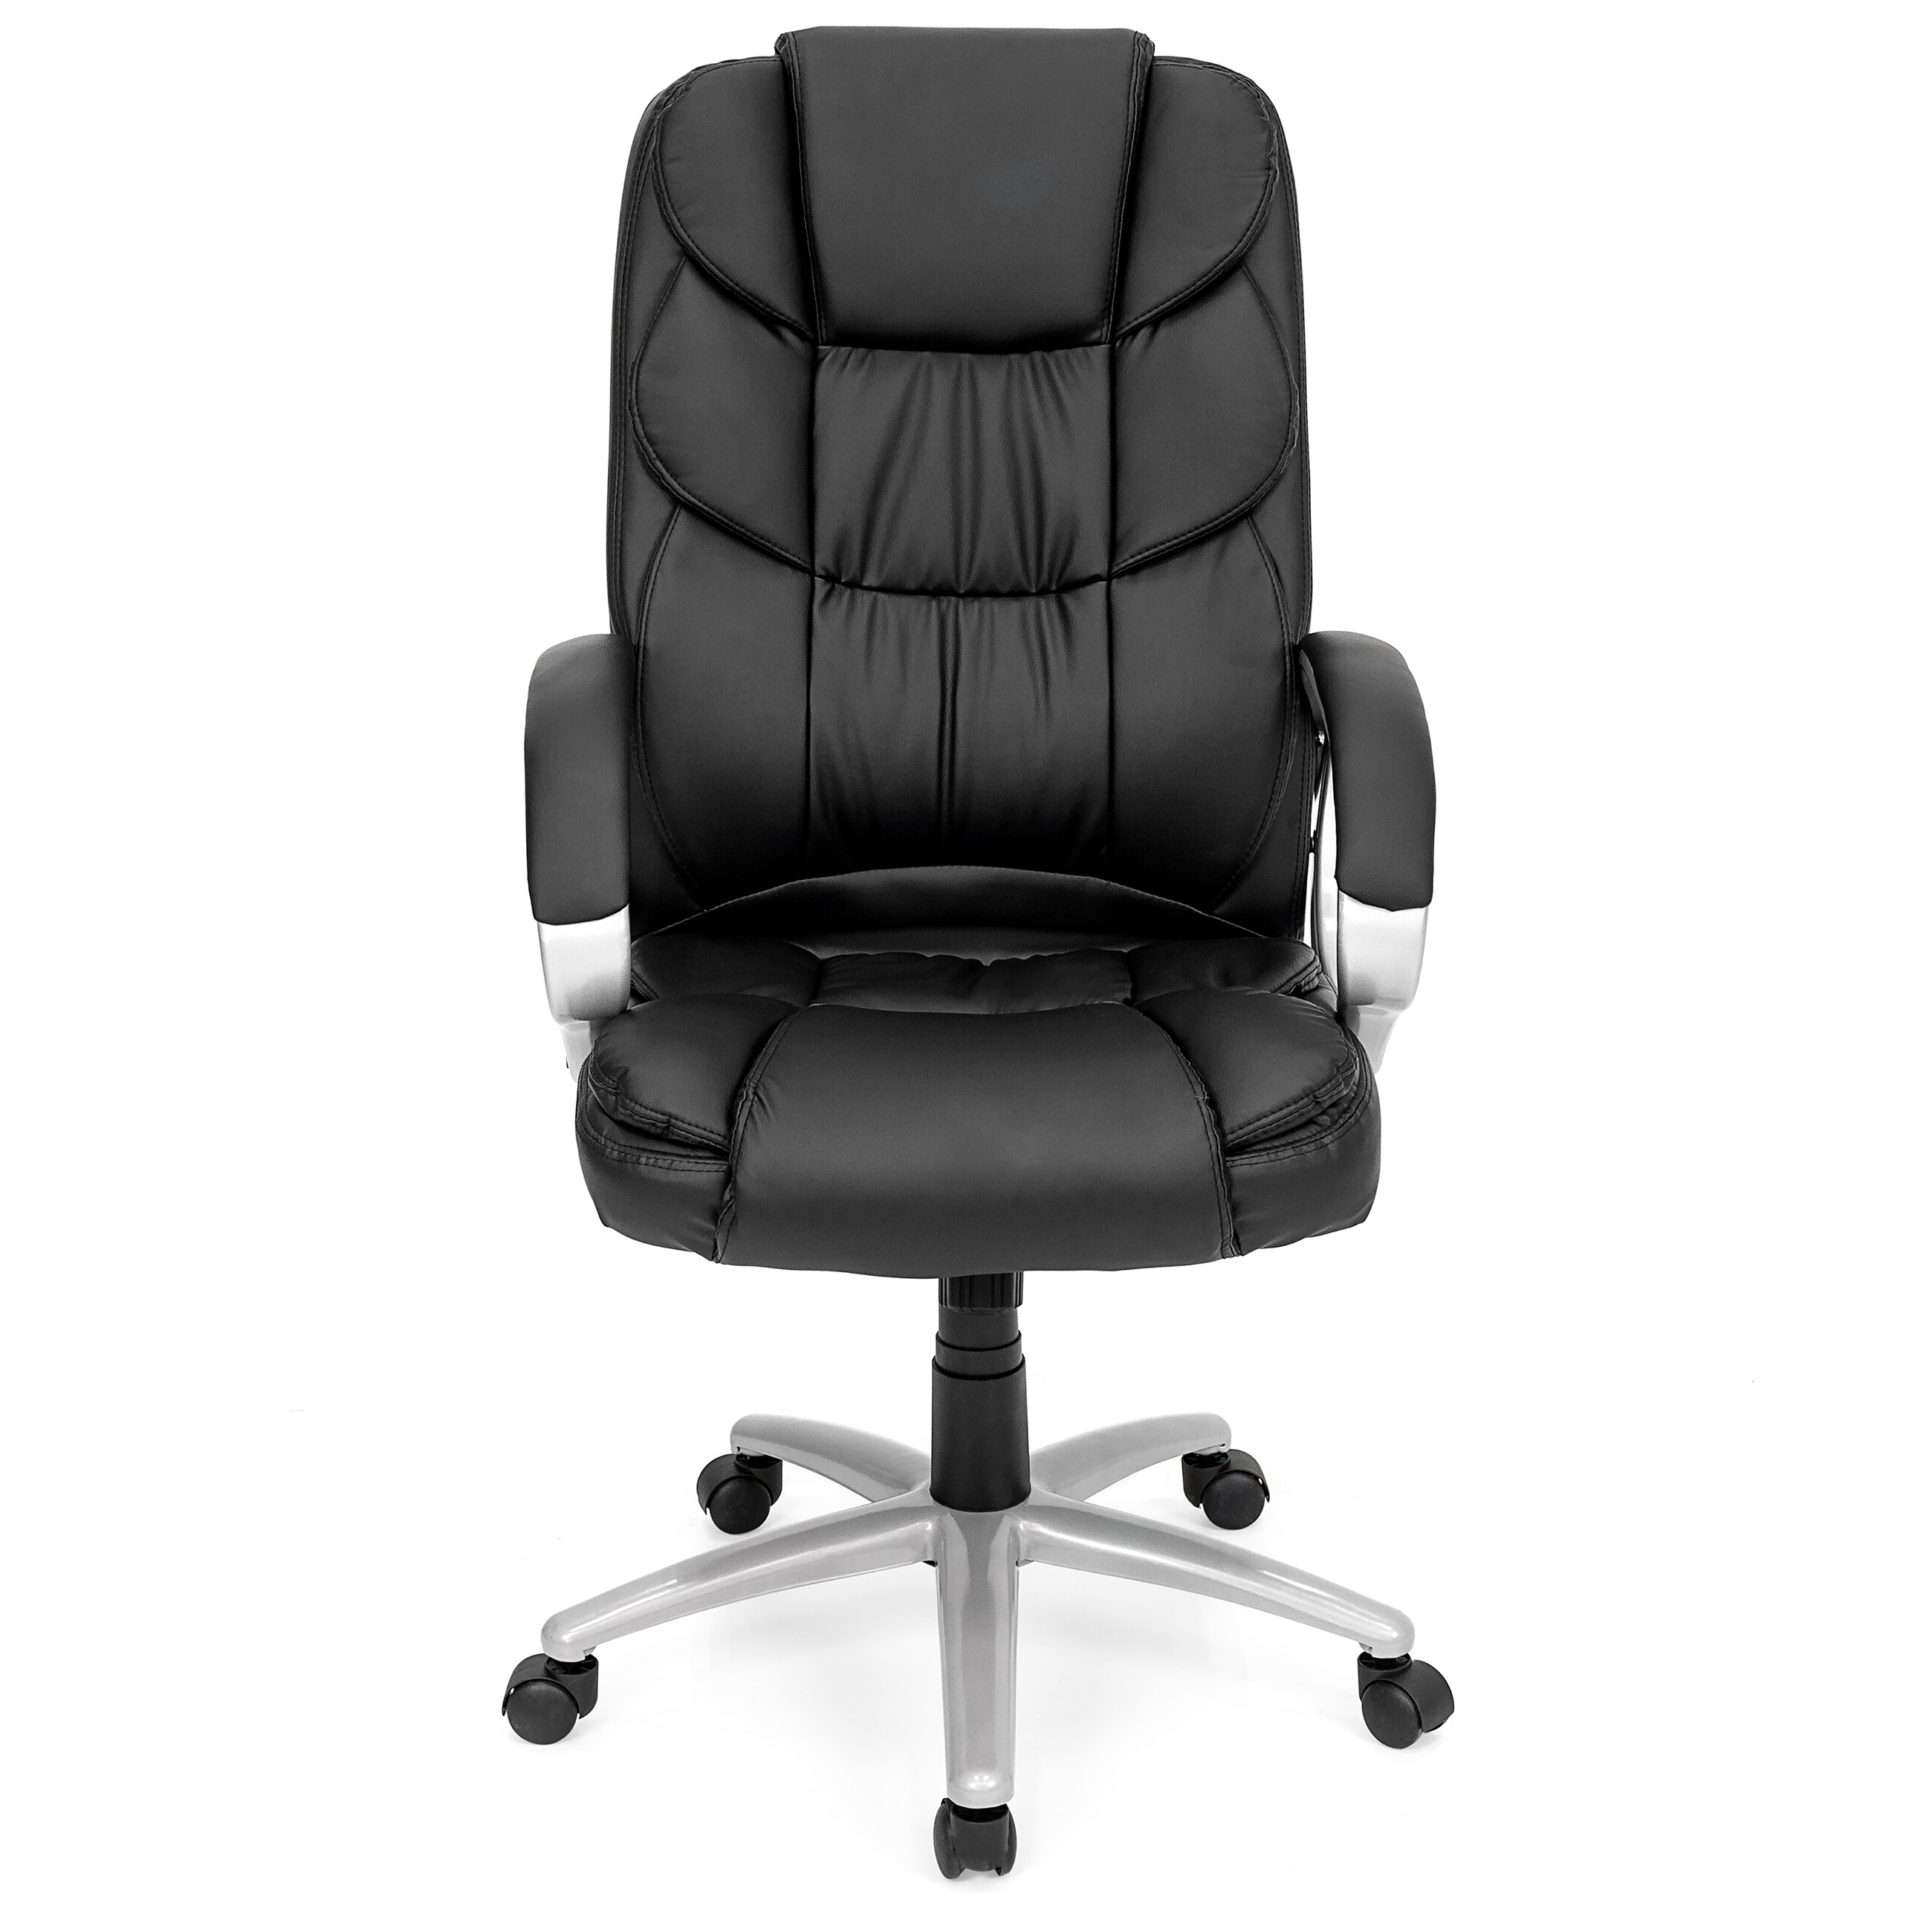 Best Choice Products Ergonomic PU Leather High Back Office Chair, Black 2